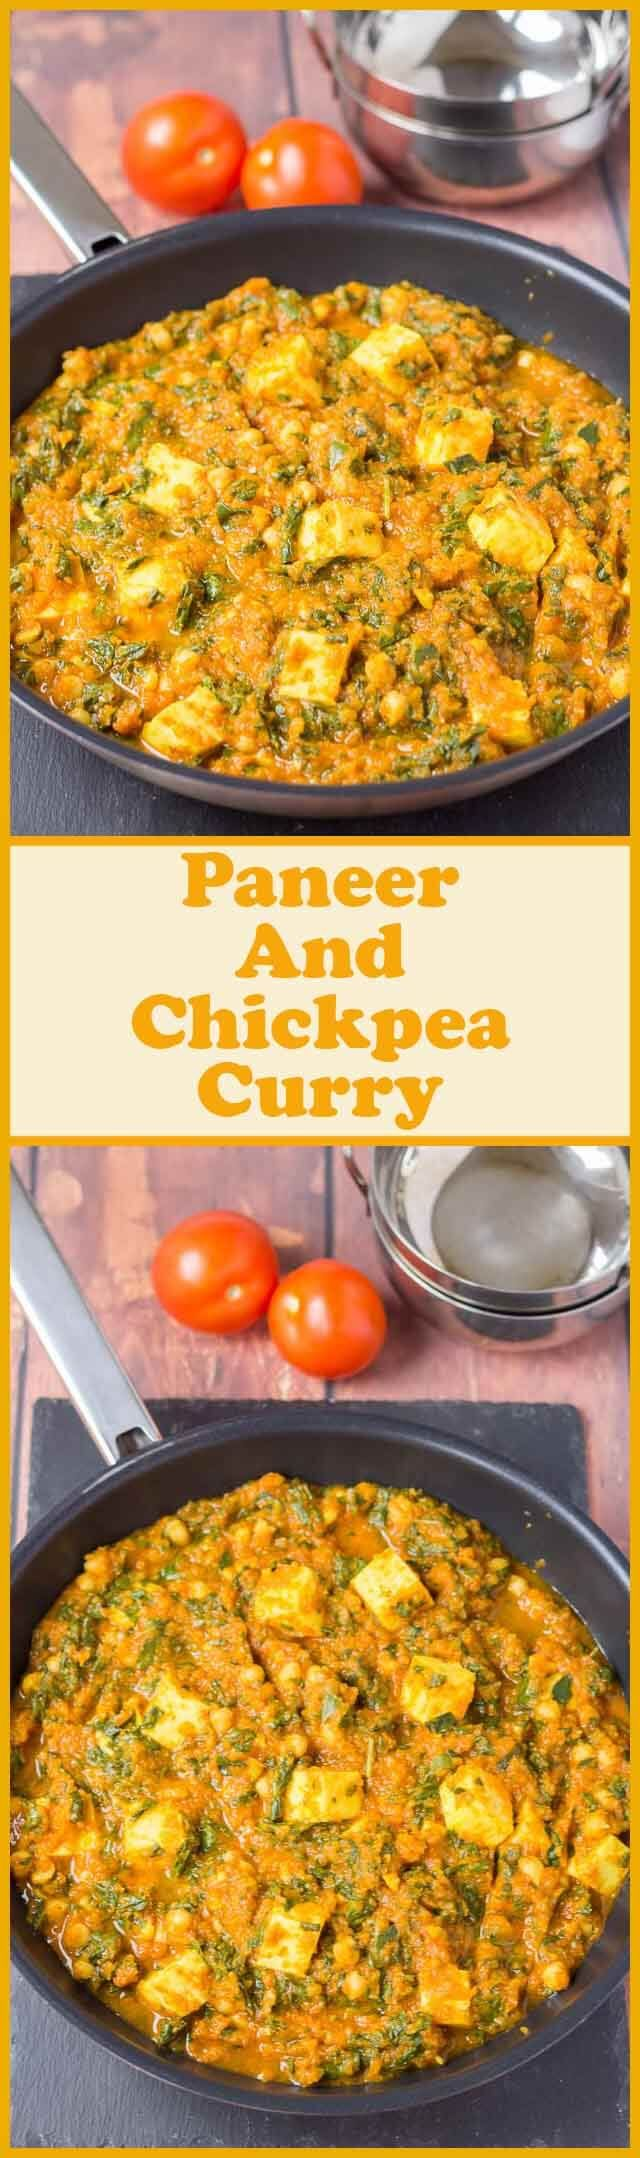 This vegetarian paneer and chickpea curry is not only healthy and easy to make, but it's incredibly low cost too. Tinned tomatoes, tinned chickpeas and a selection of store cupboard spices combined with paneer cheese make a deliciously mild family curry for four! via @neilhealthymeal